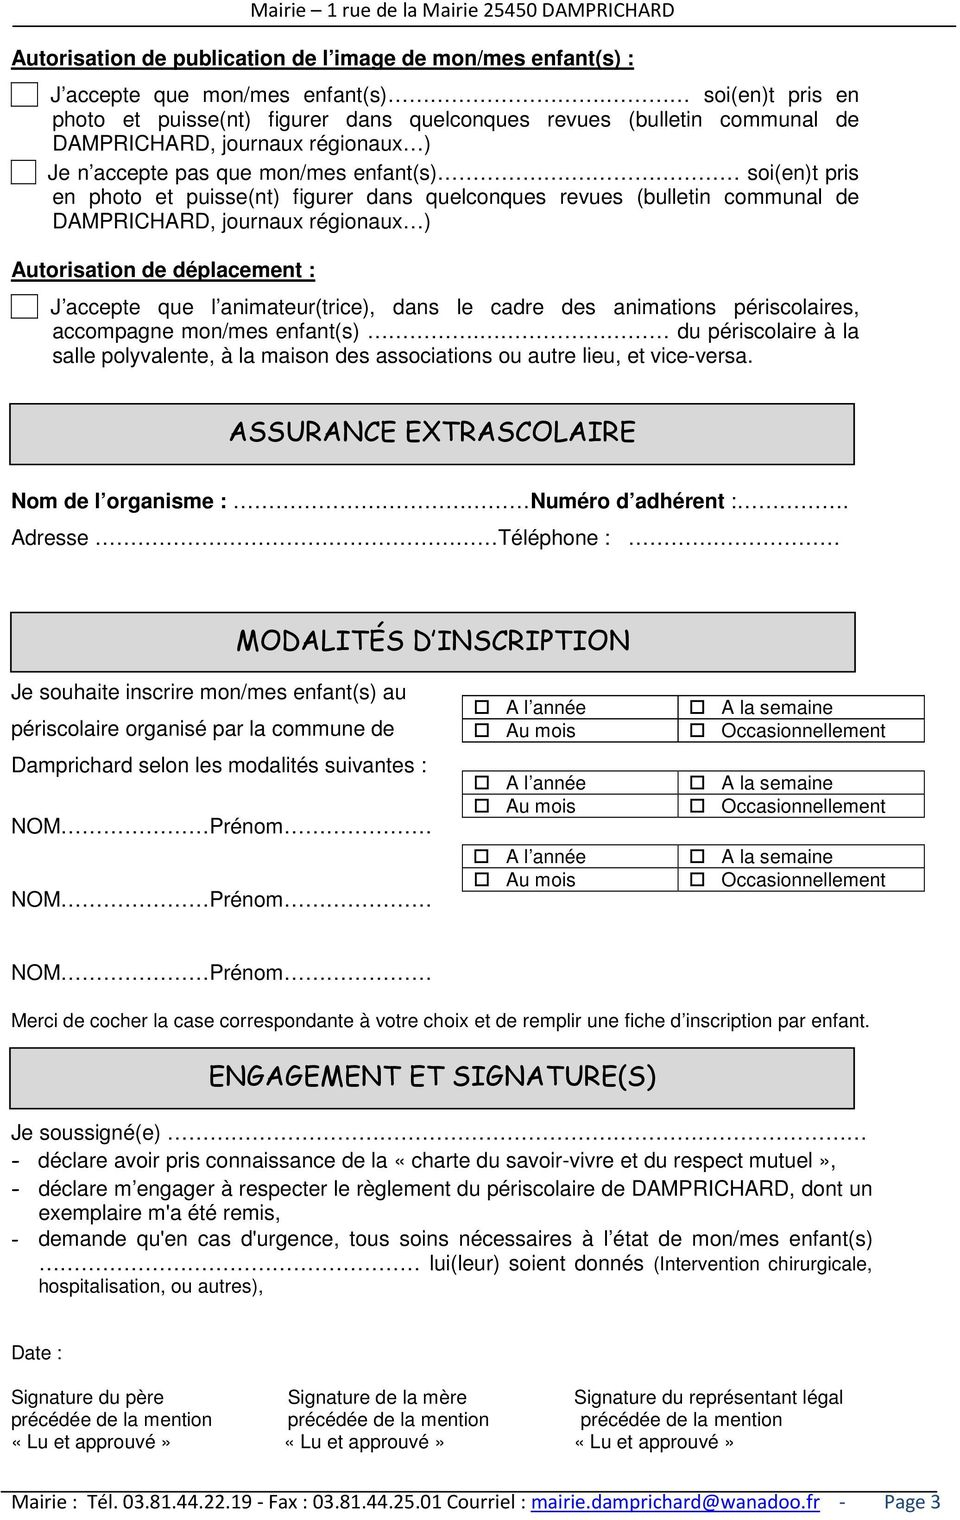 soi(en)t pris en photo et puisse(nt) figurer dans quelconques revues (bulletin communal de DAMPRICHARD, journaux régionaux ) Autorisation de déplacement : J accepte que l animateur(trice), dans le